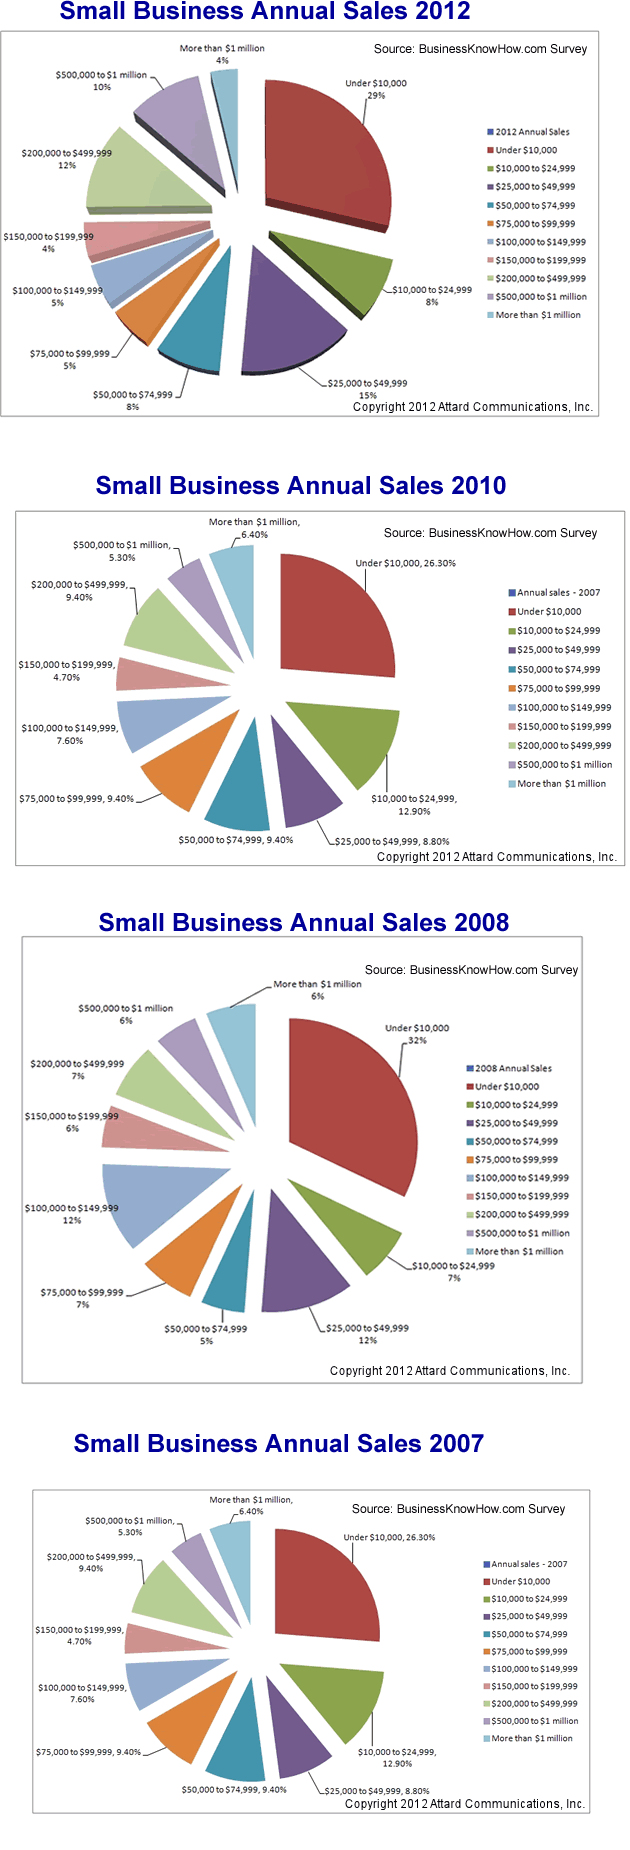 Small Business Annual Sales